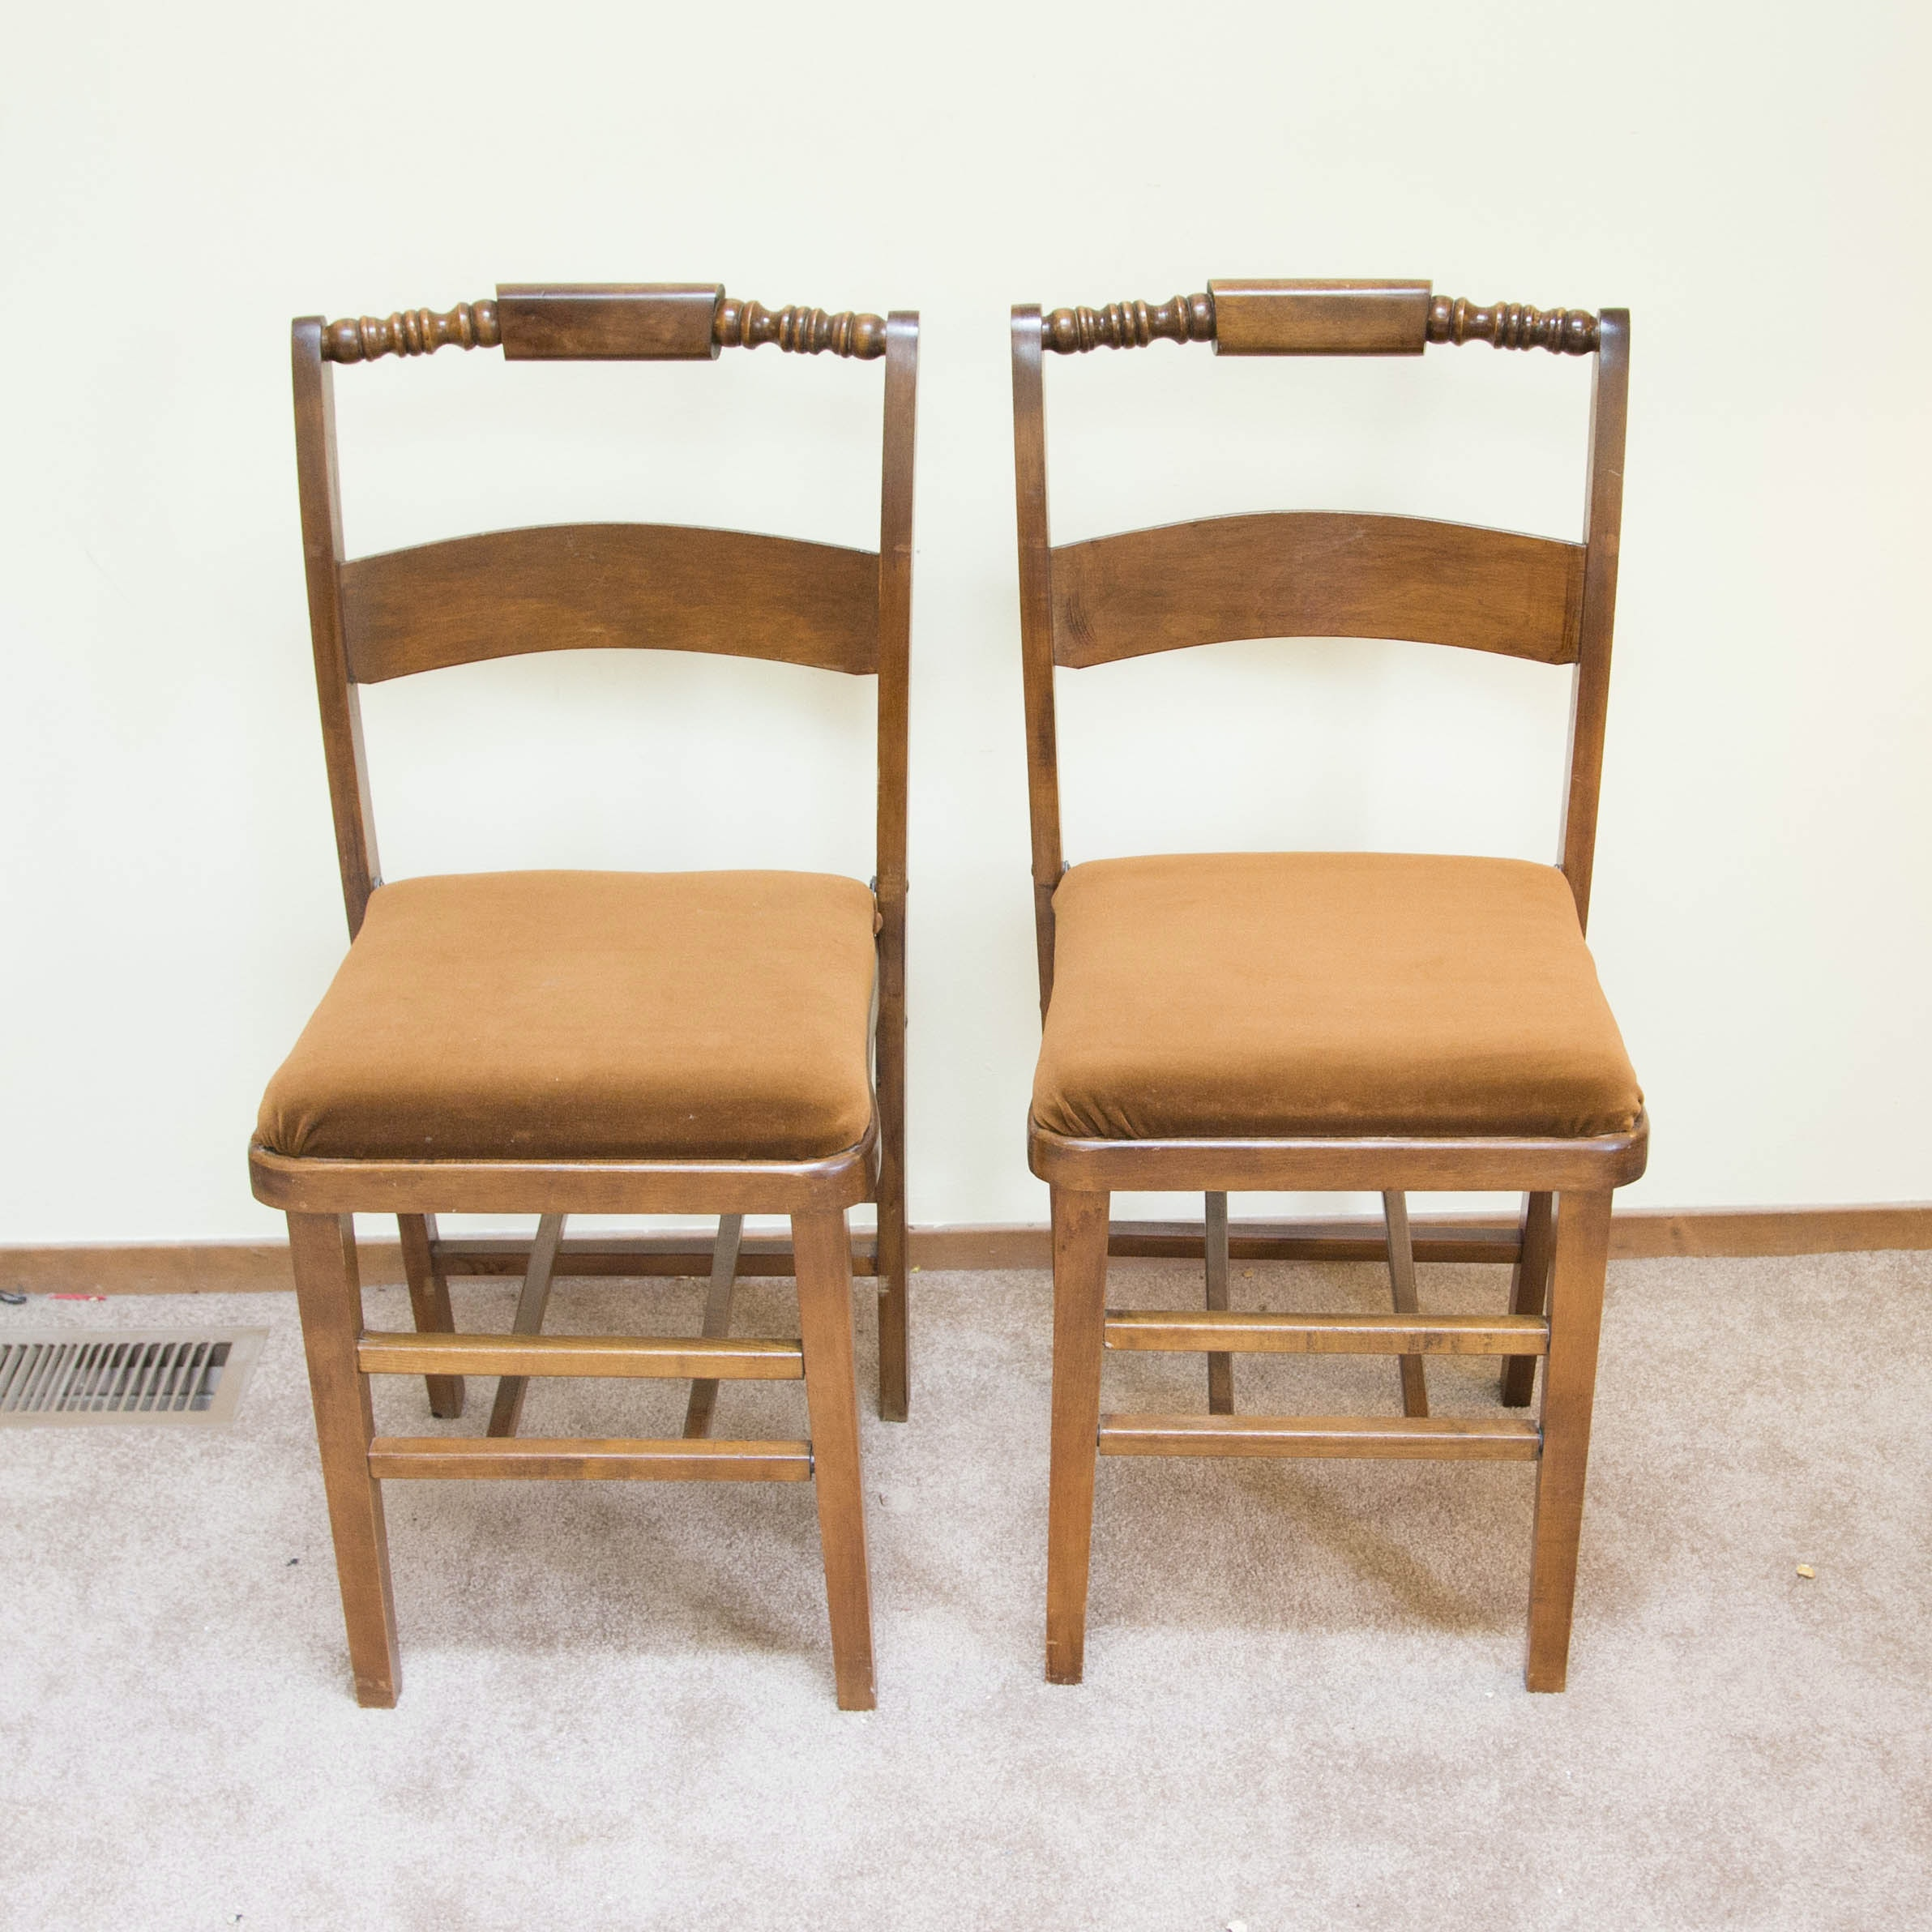 Vintage Wooden Folding Chairs ...